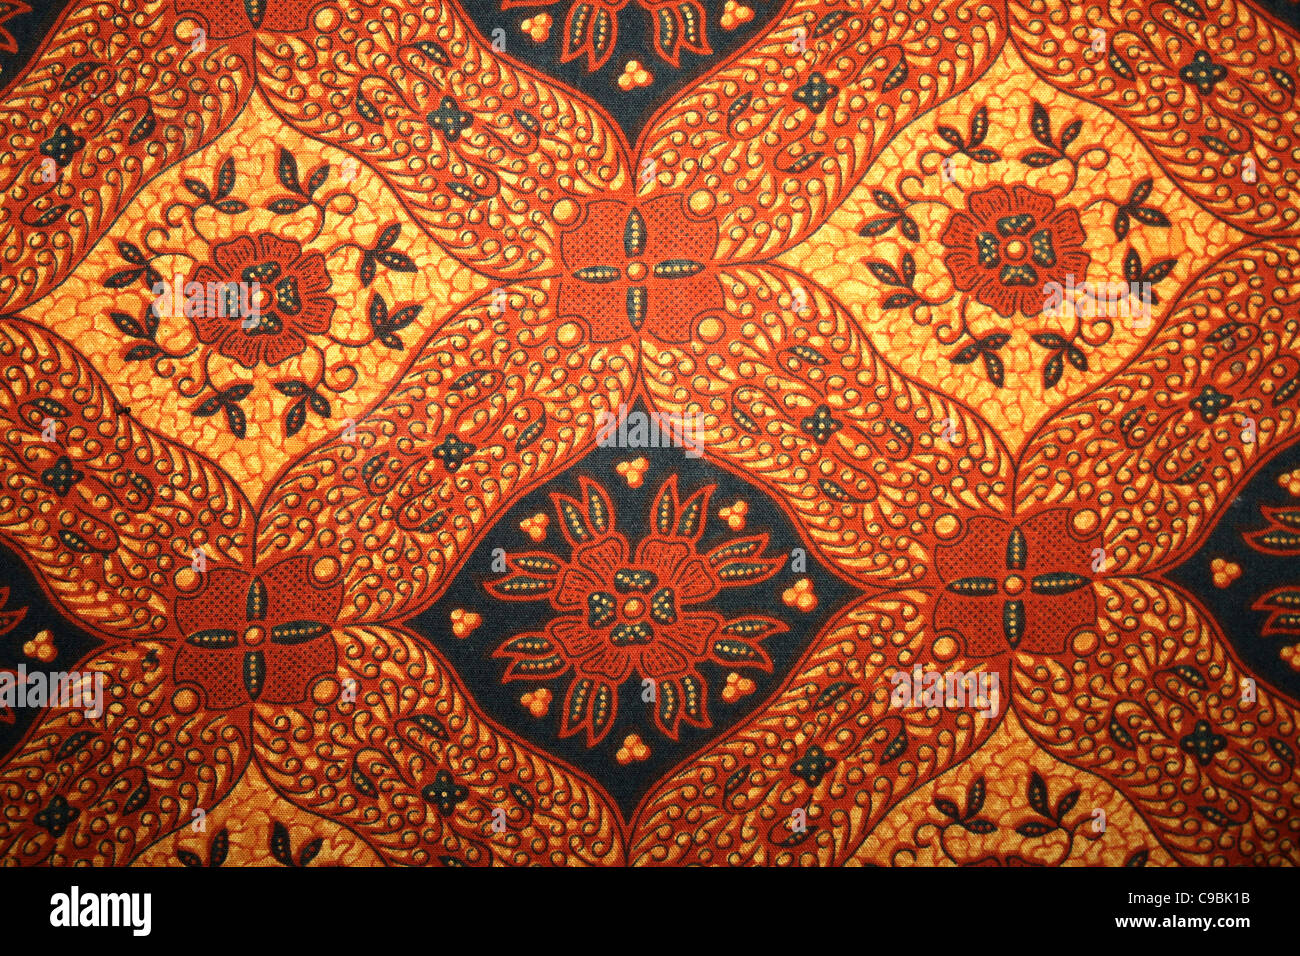 Traditional Batik Work From Indonesia Stock Photo, Royalty